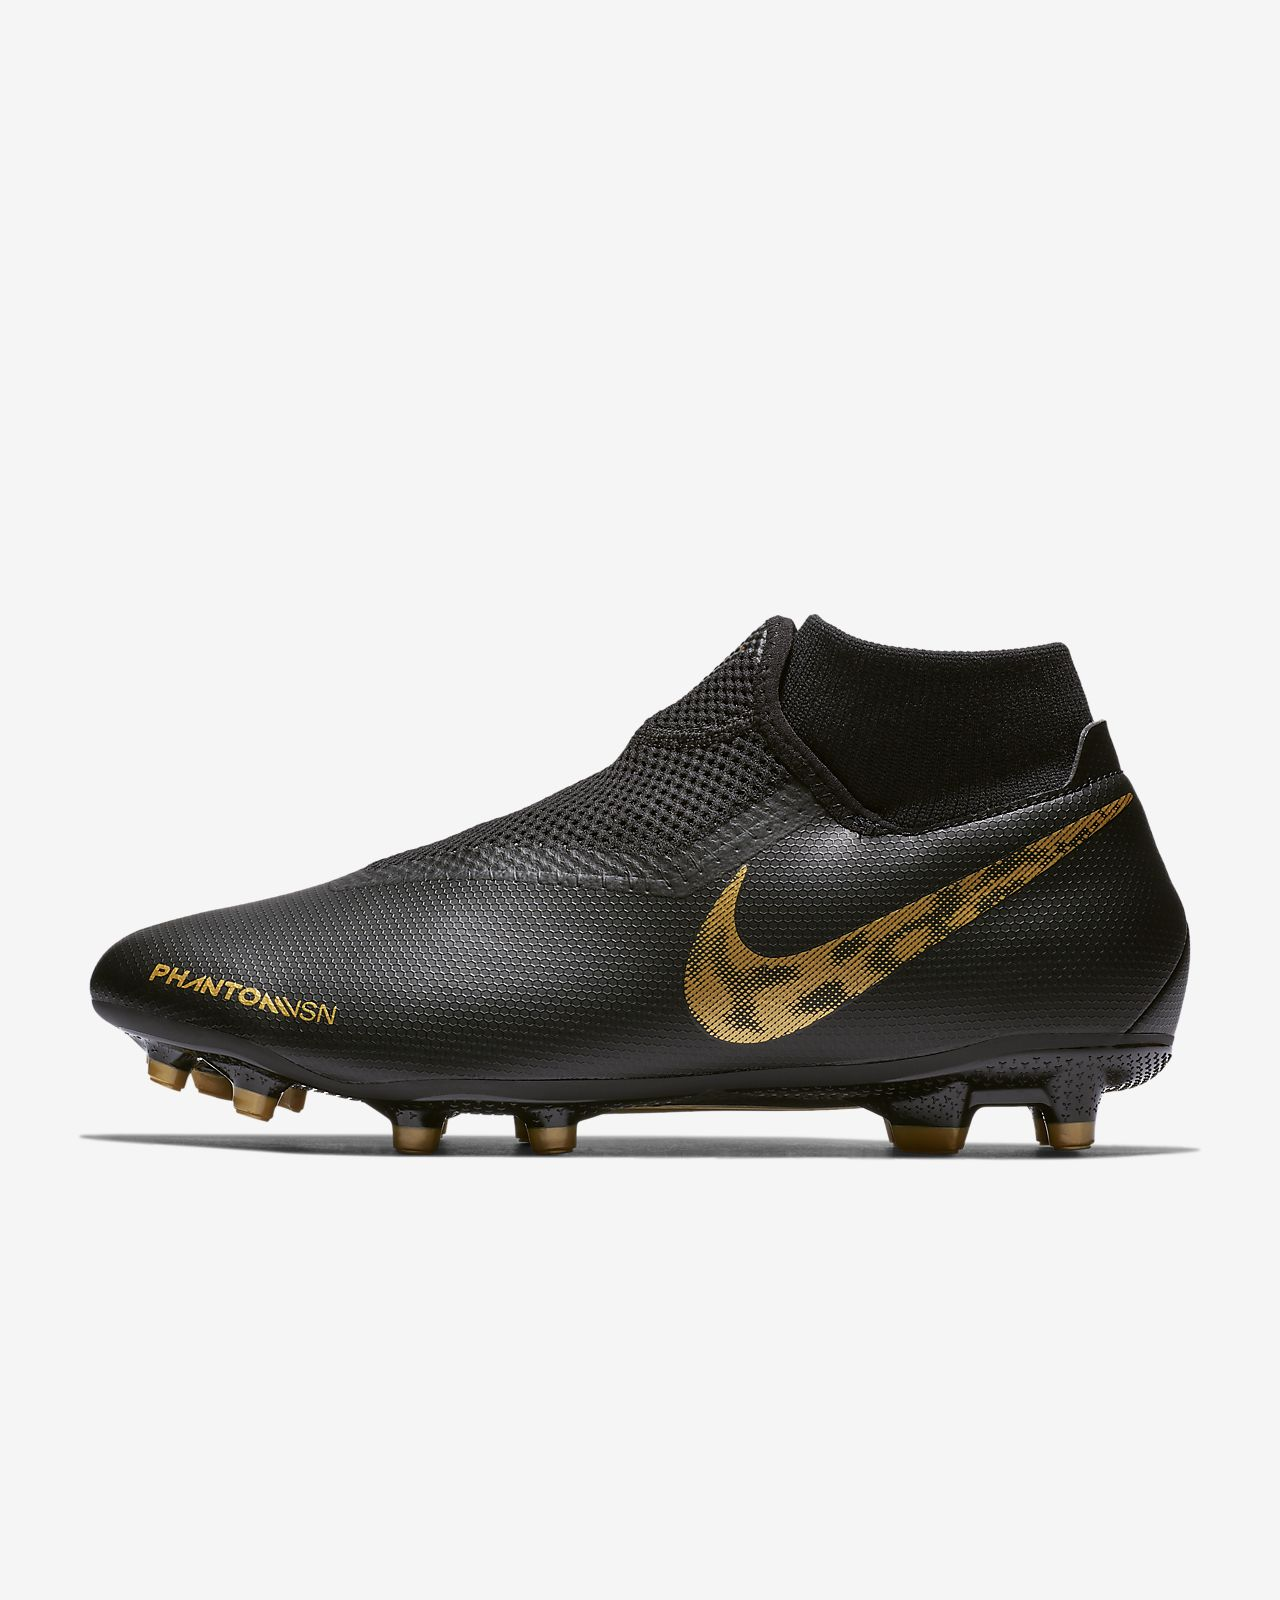 fd9419519 Multi-Ground Football Boot. Nike Phantom Vision Academy Dynamic Fit MG